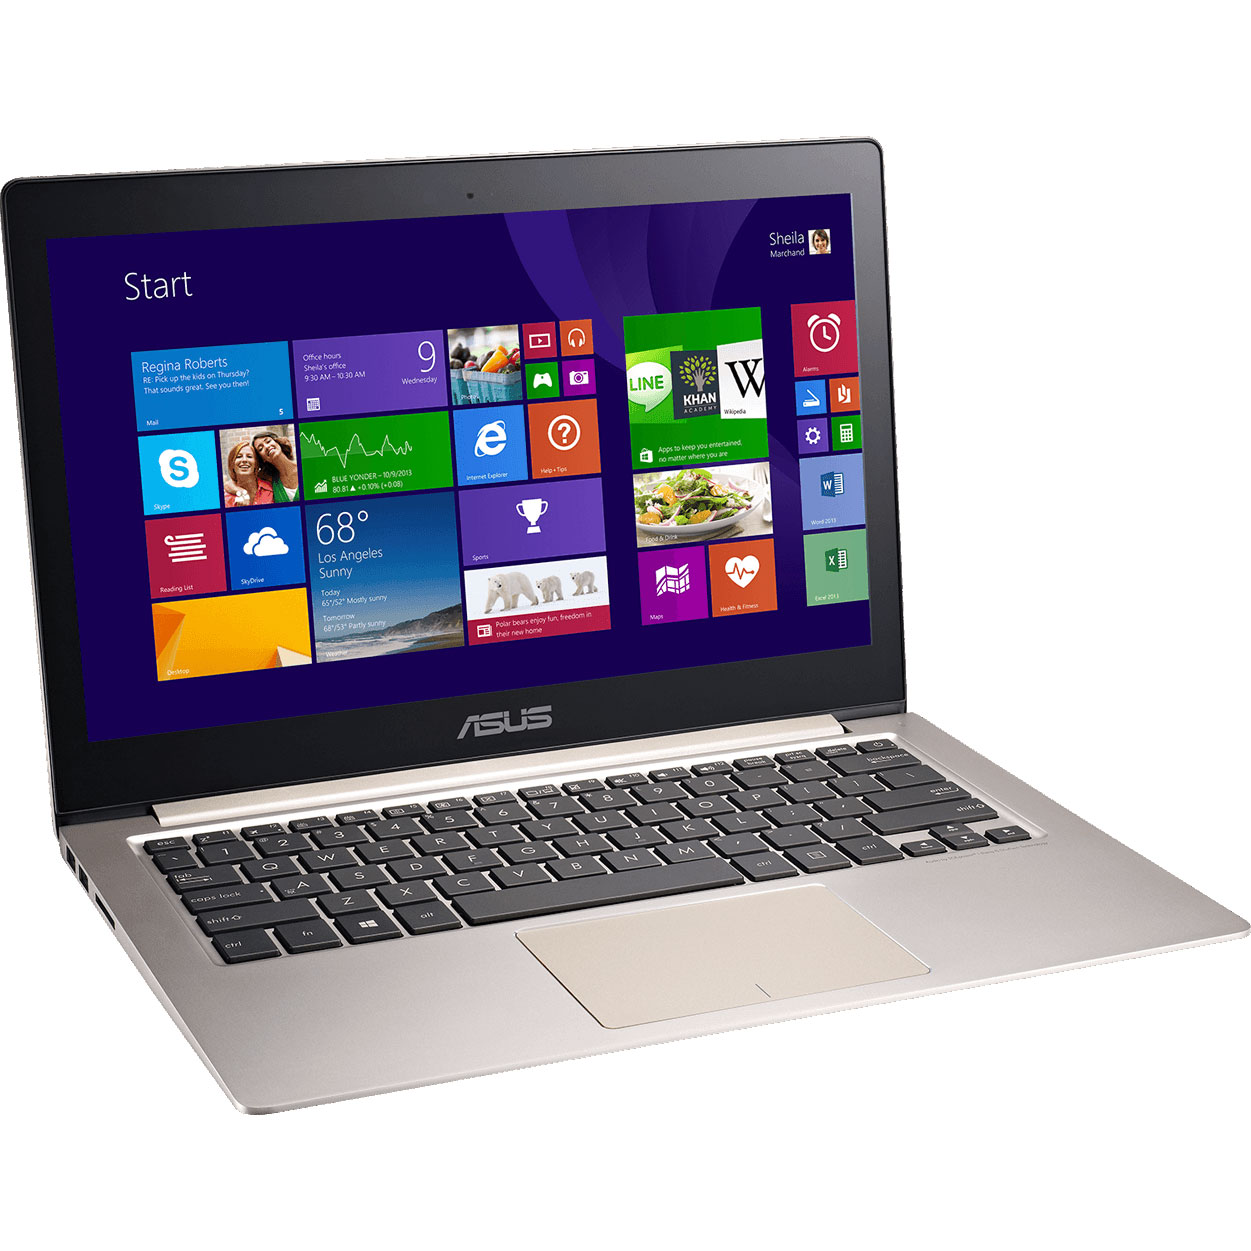 asus zenbook ux303ua r4066t ux303ua r4066t achat vente pc portable sur. Black Bedroom Furniture Sets. Home Design Ideas